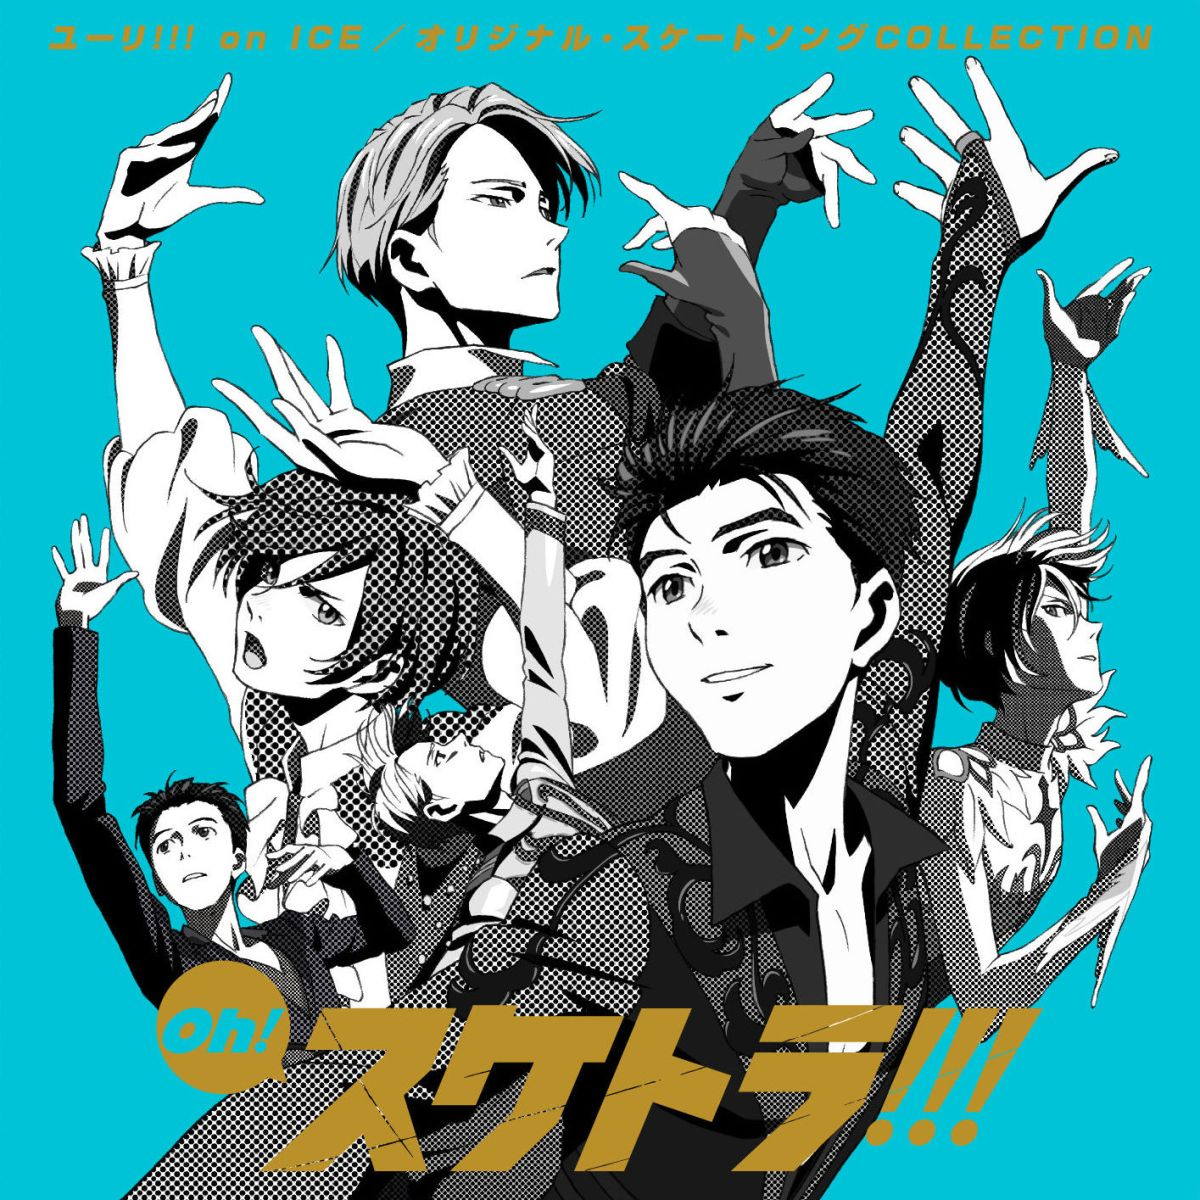 Oh! Skatra!!! YURI!!! on ICE Original Skate Song COLLECTION - Review